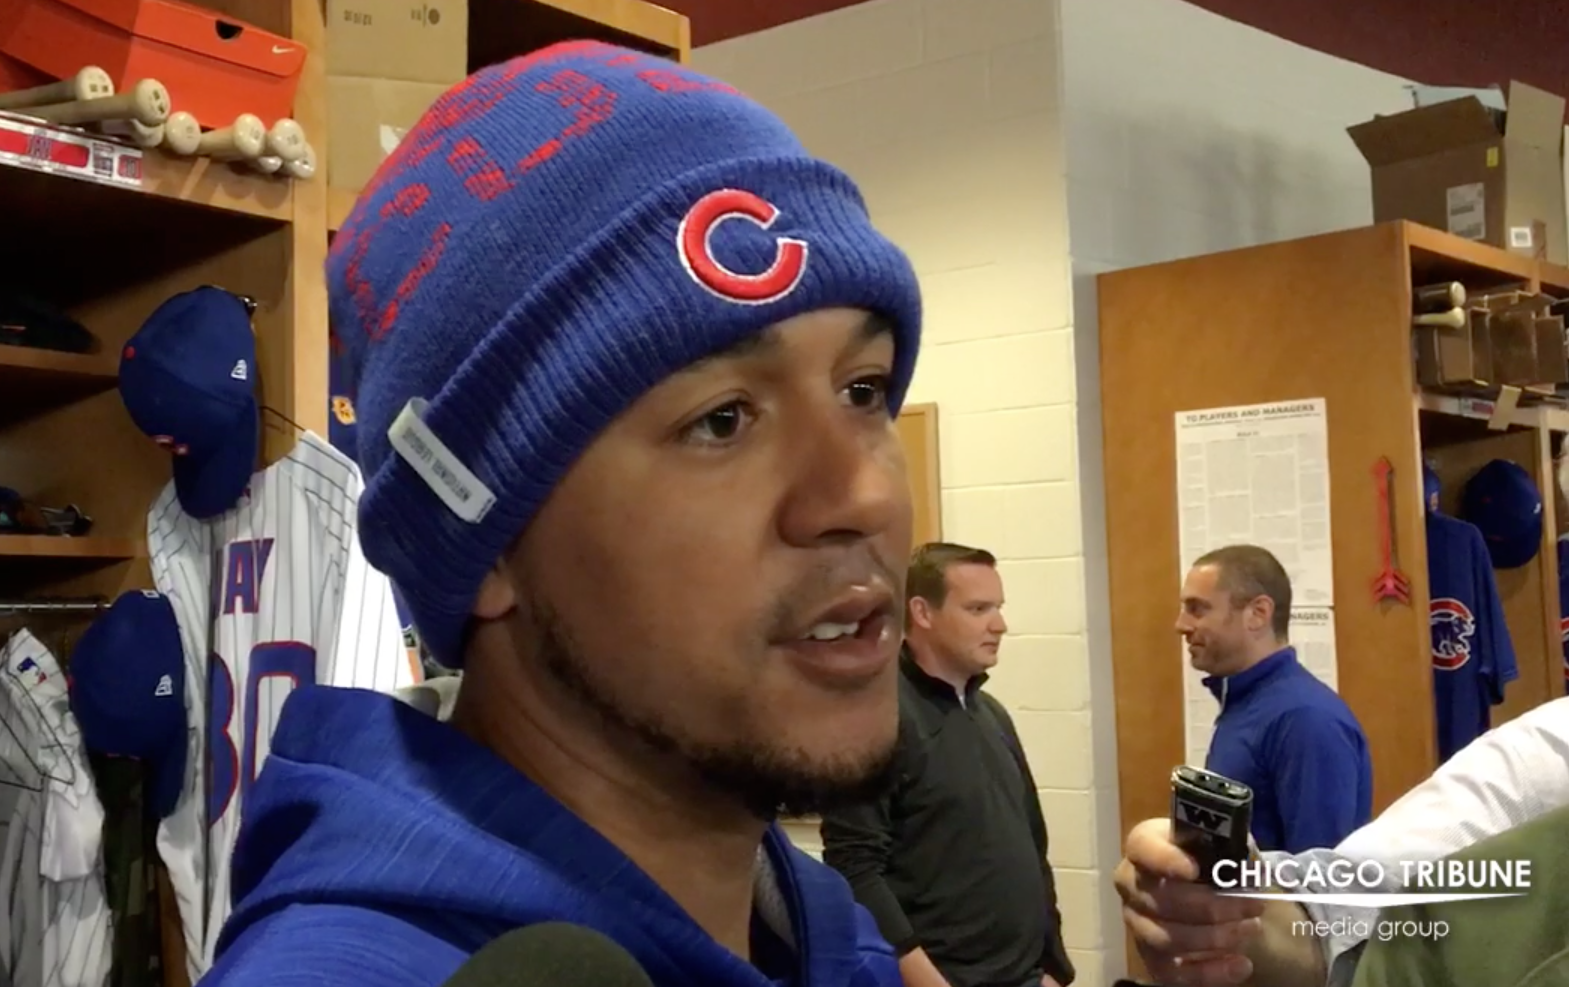 Ct-jon-jay-fitting-in-with-cubs-20170223